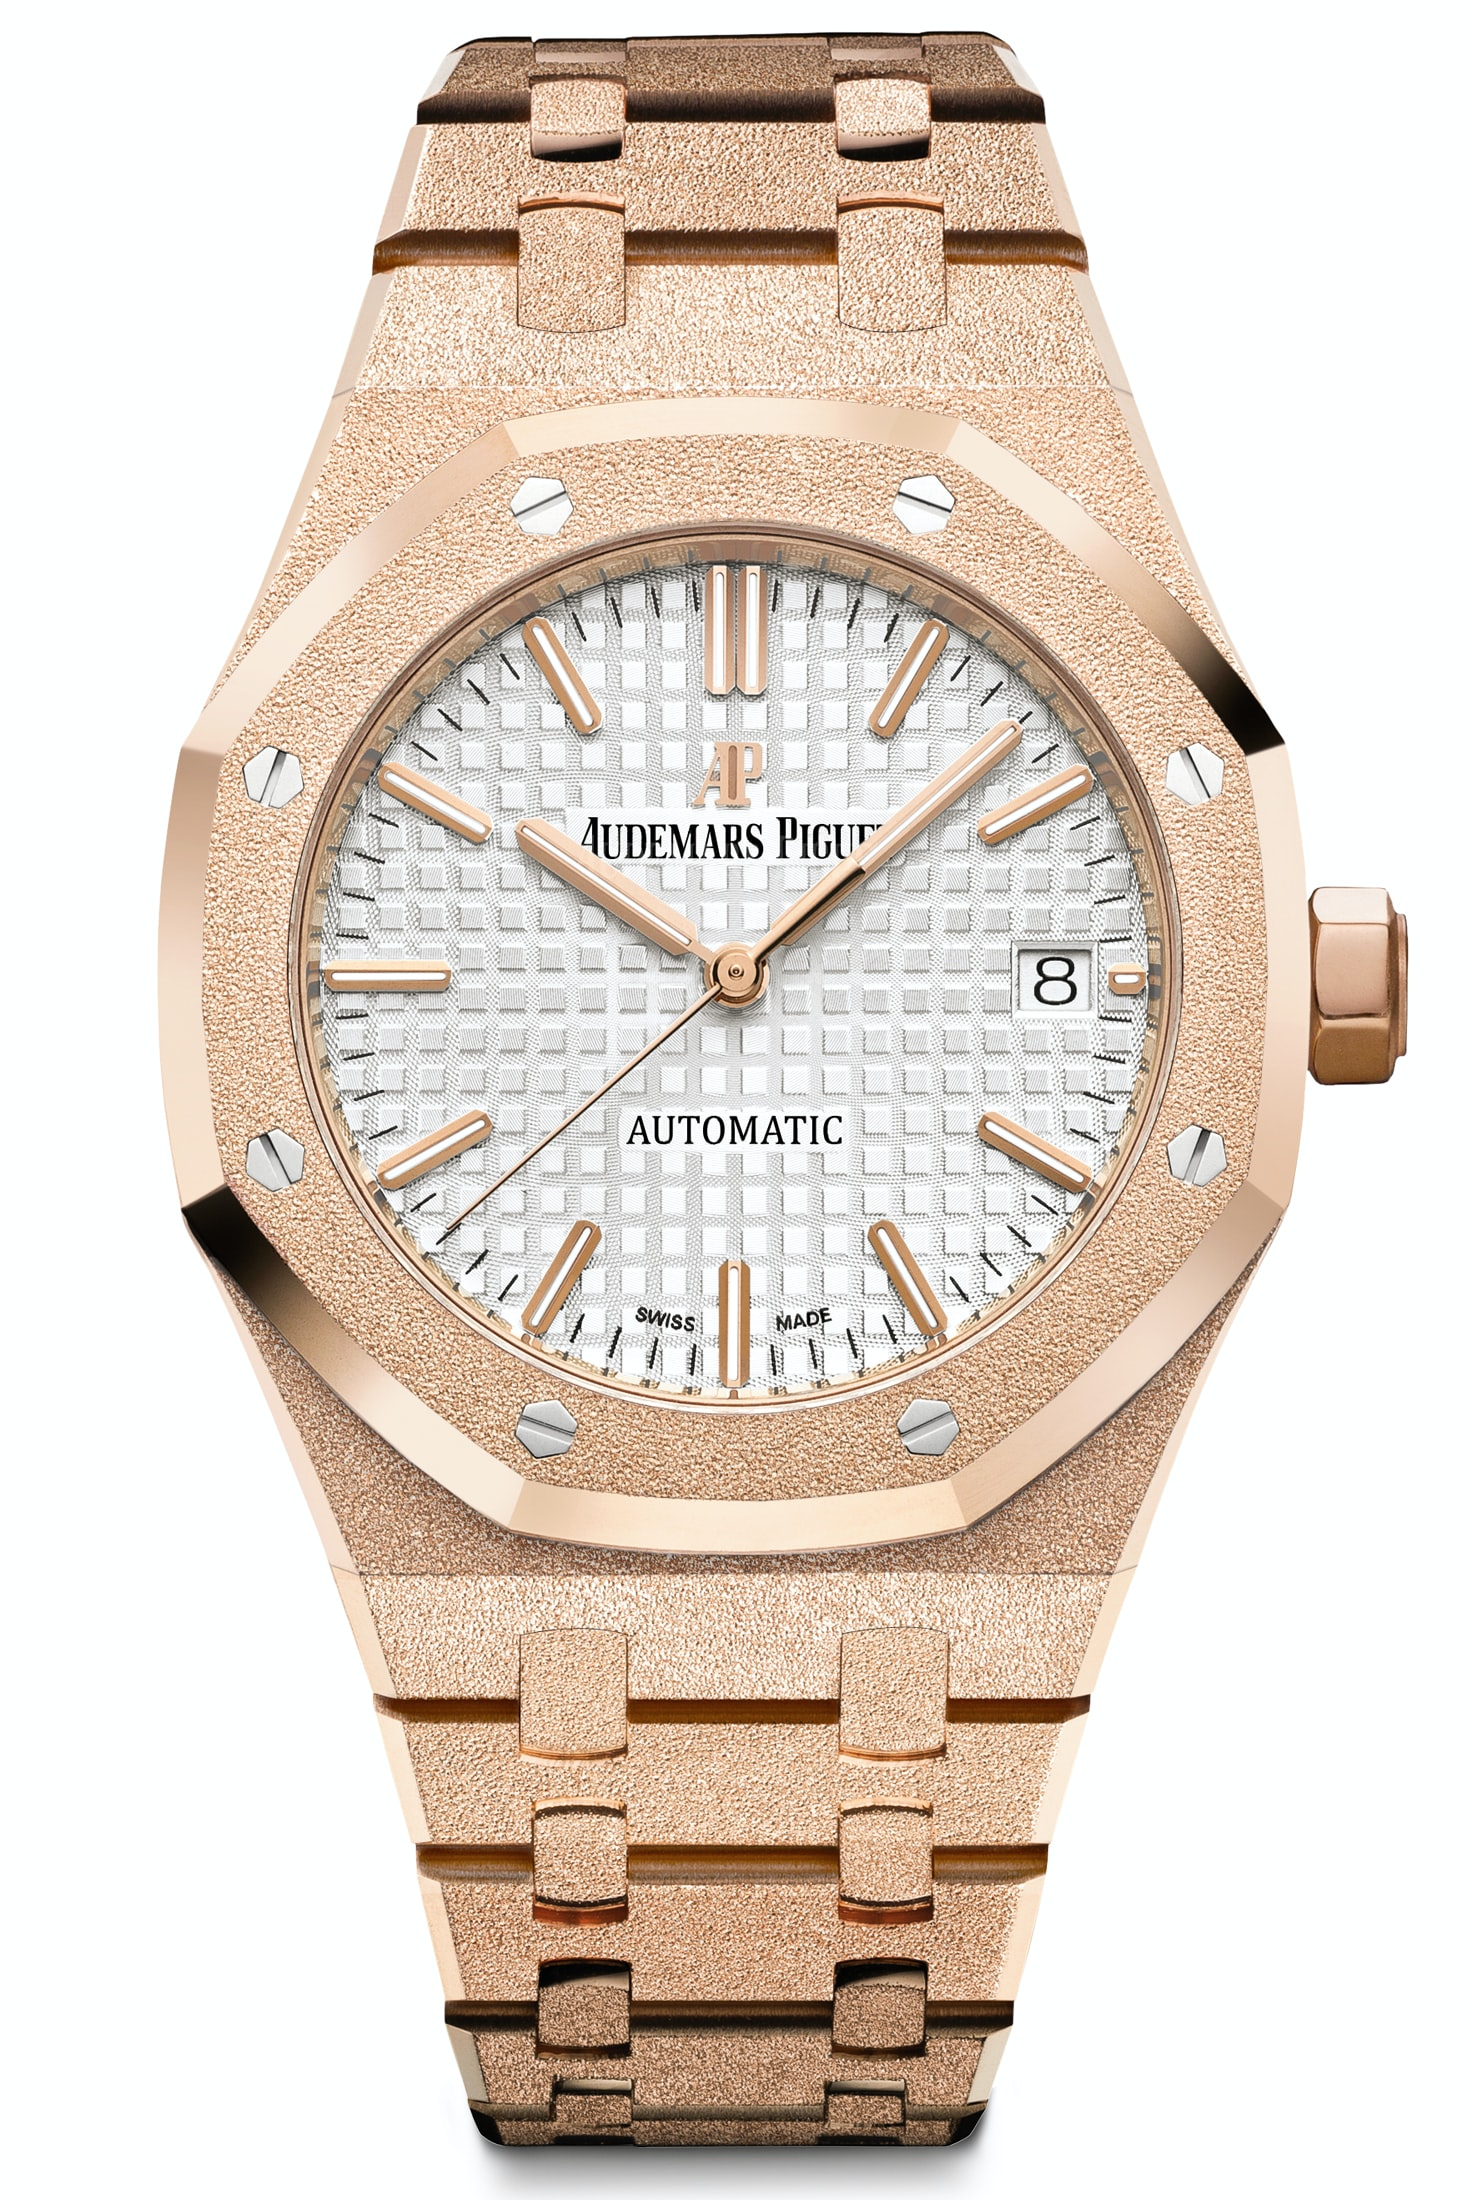 In rose gold, there's a bit more contrast between the case and the dial. Introducing: The New 40th Anniversary Frosted Gold Ladies' Royal Oak From Audemars Piguet Introducing: The New 40th Anniversary Frosted Gold Ladies' Royal Oak From Audemars Piguet ap5